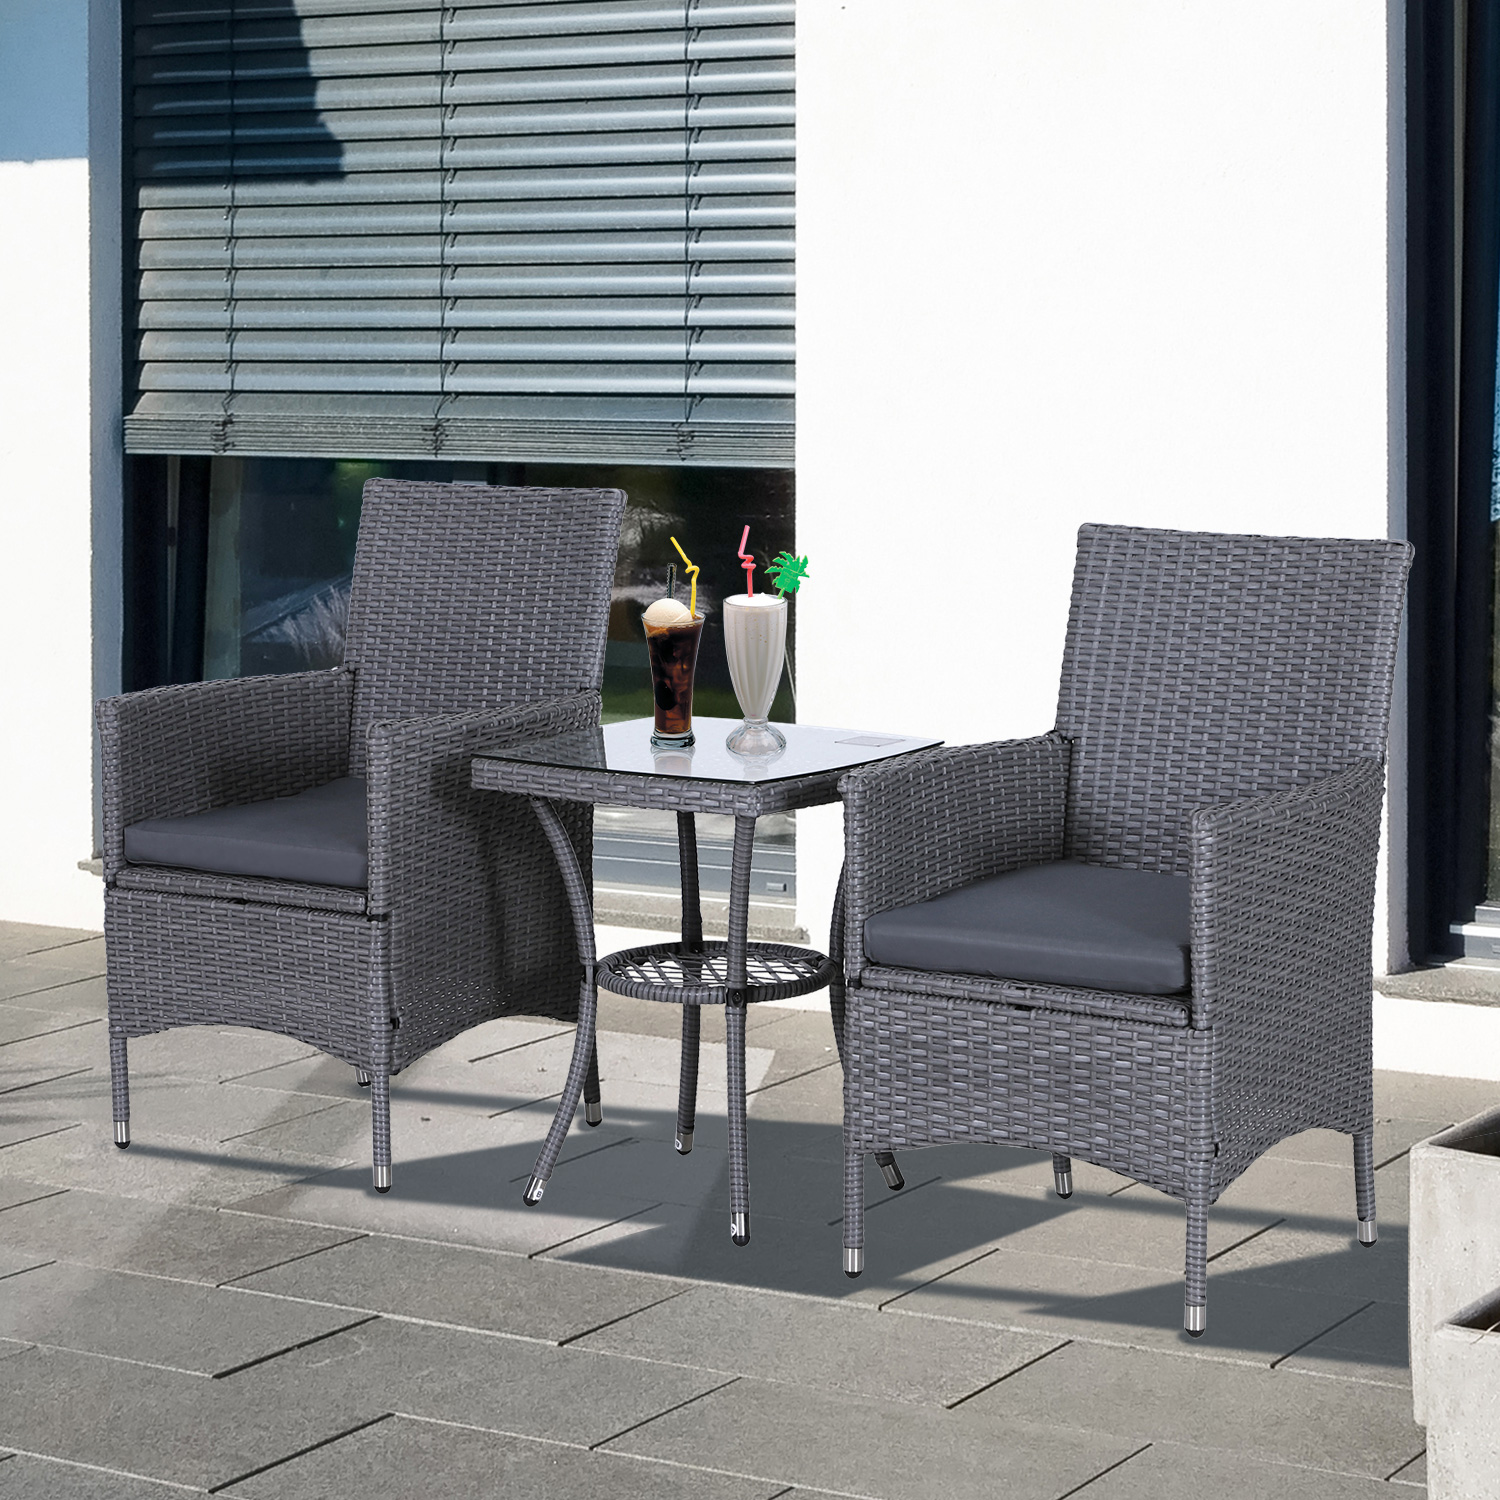 details about outsunny 3pc rattan bistro set wicker furniture for garden outdoor balcony patio